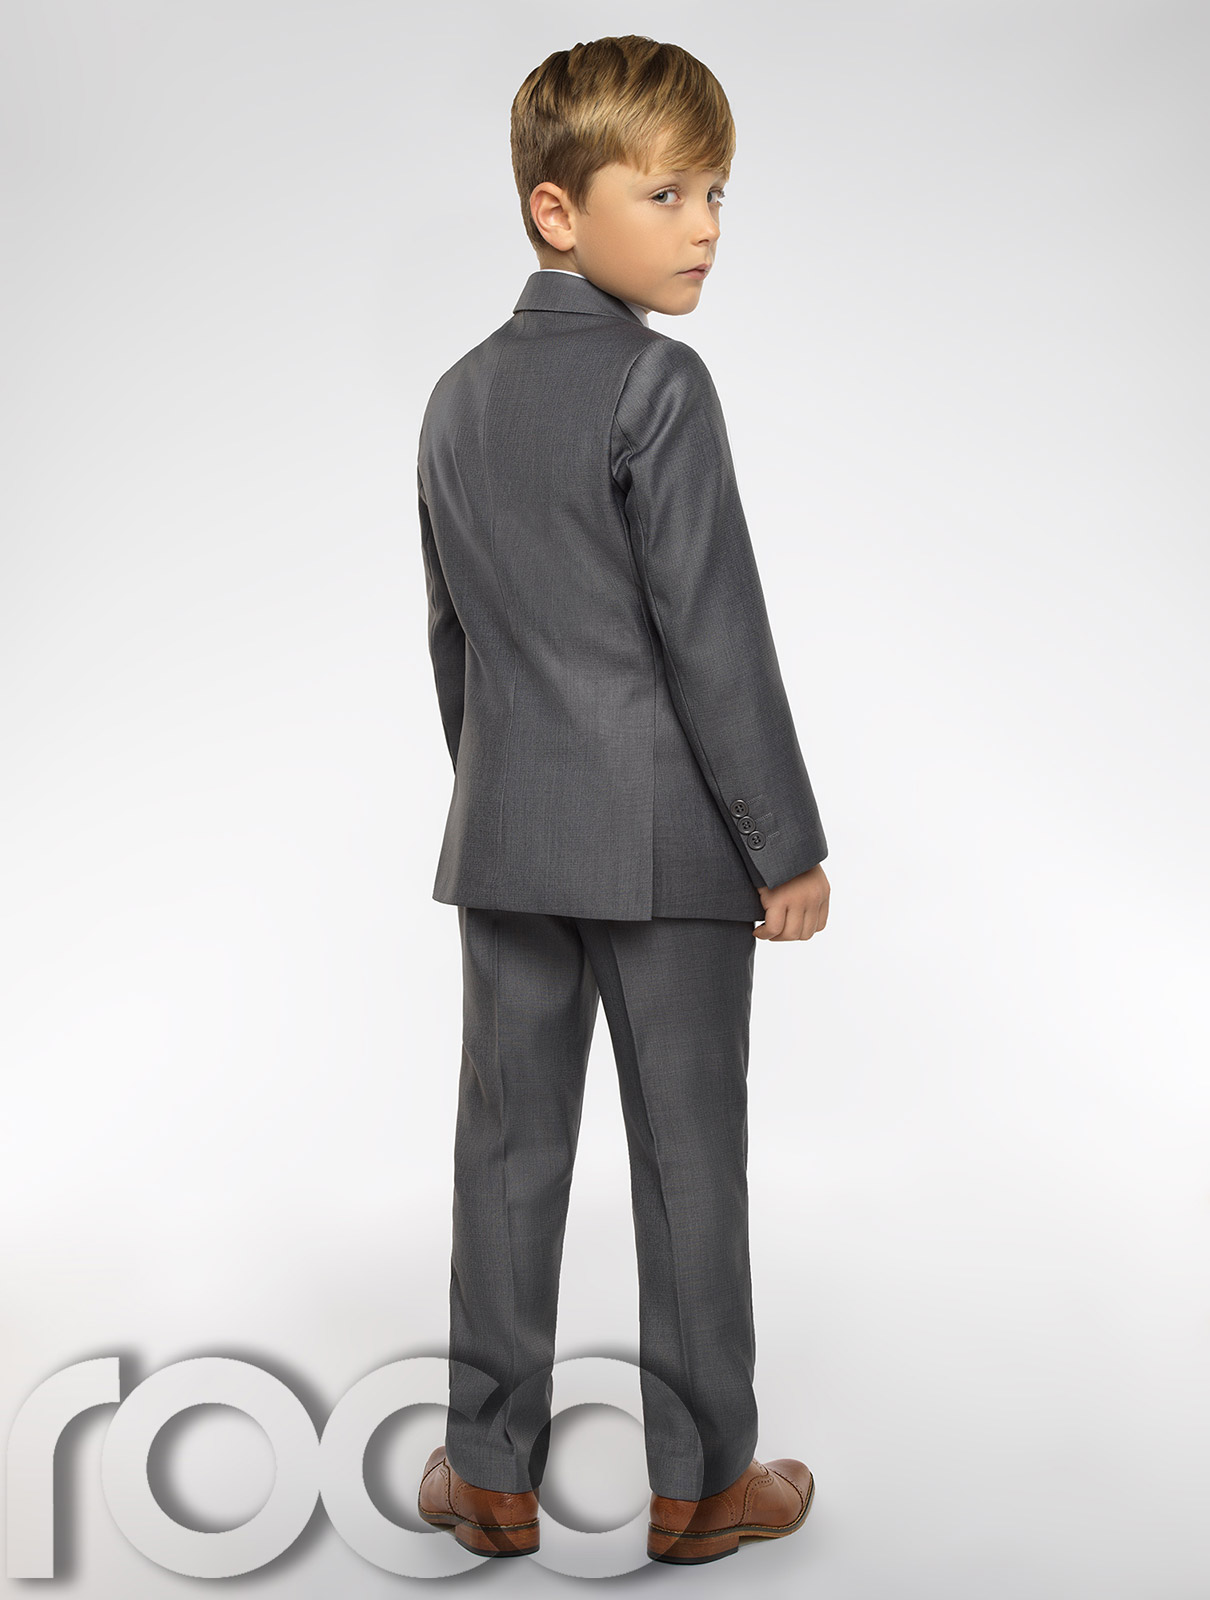 5742becbe353 Boys grey suit with check waistcoat. Sampson   Oliver waistcoat